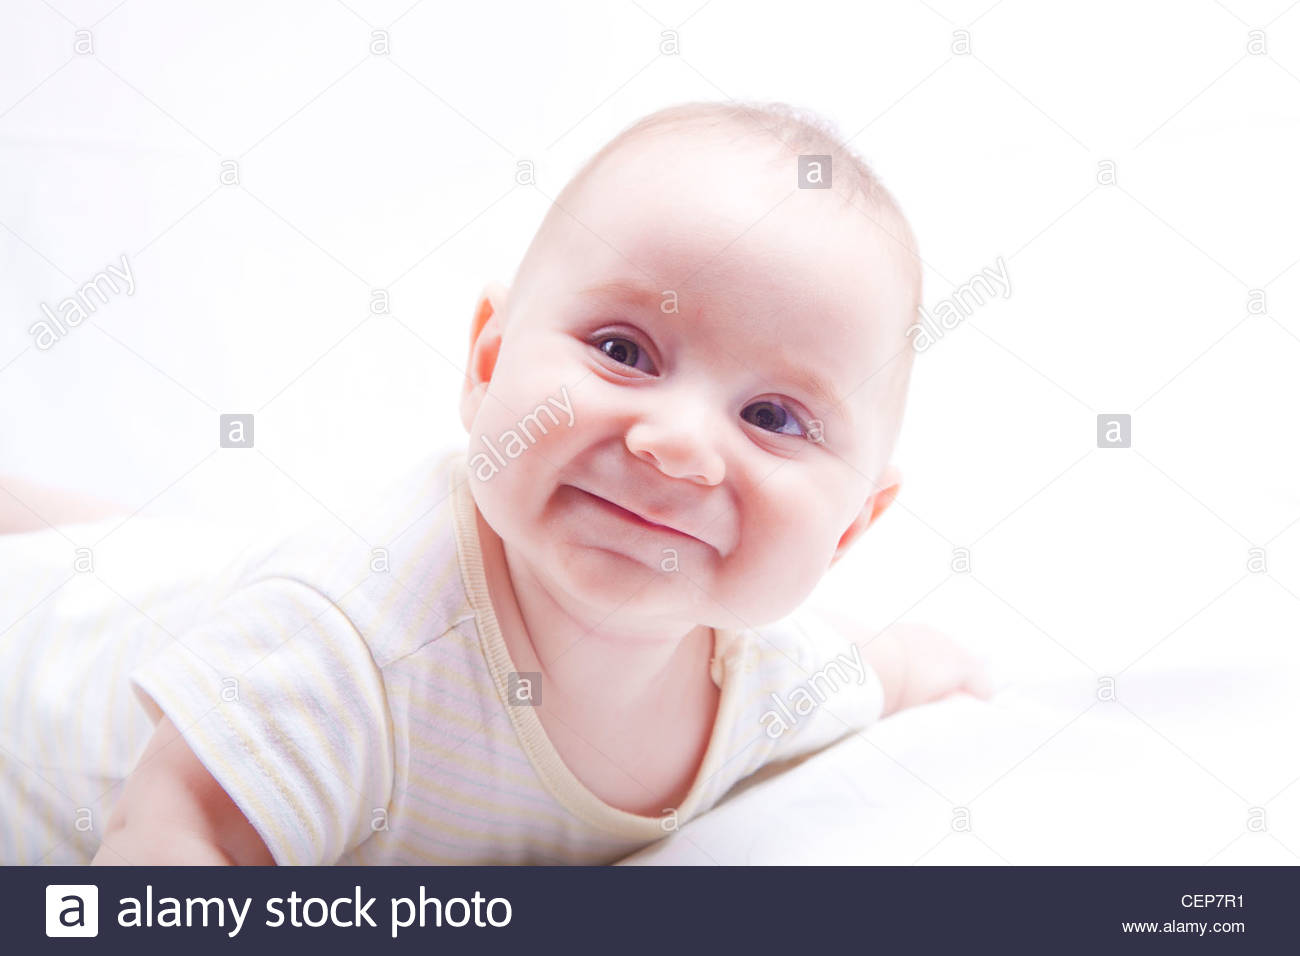 Cute Baby Boy Smiling While He Lays Down On White Background Stock